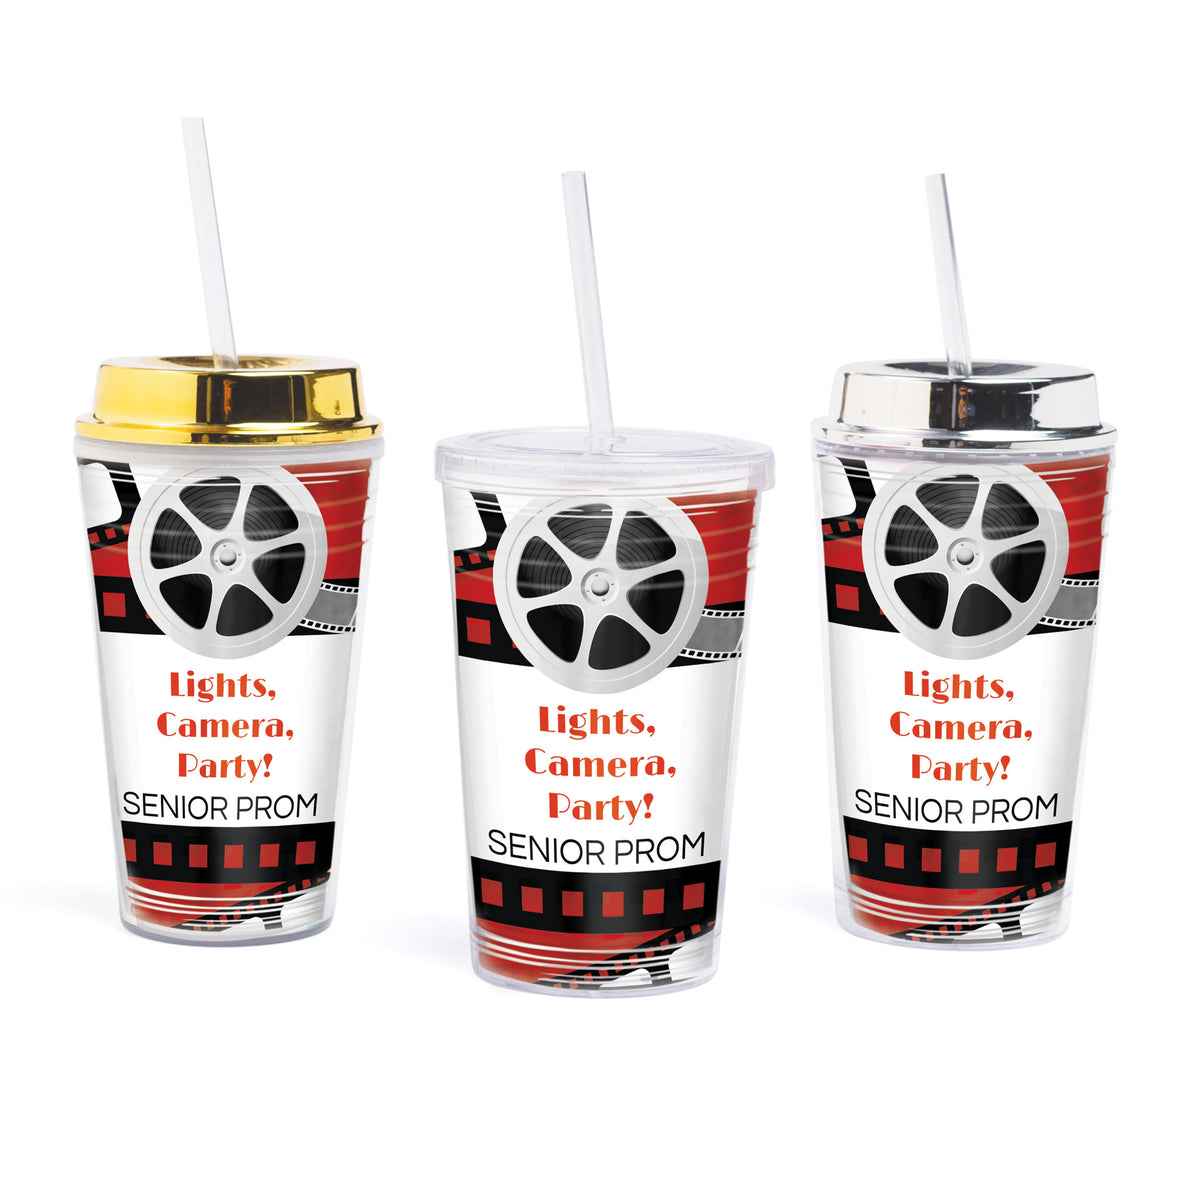 Lights, Camera, Party! Personalized Tumbler